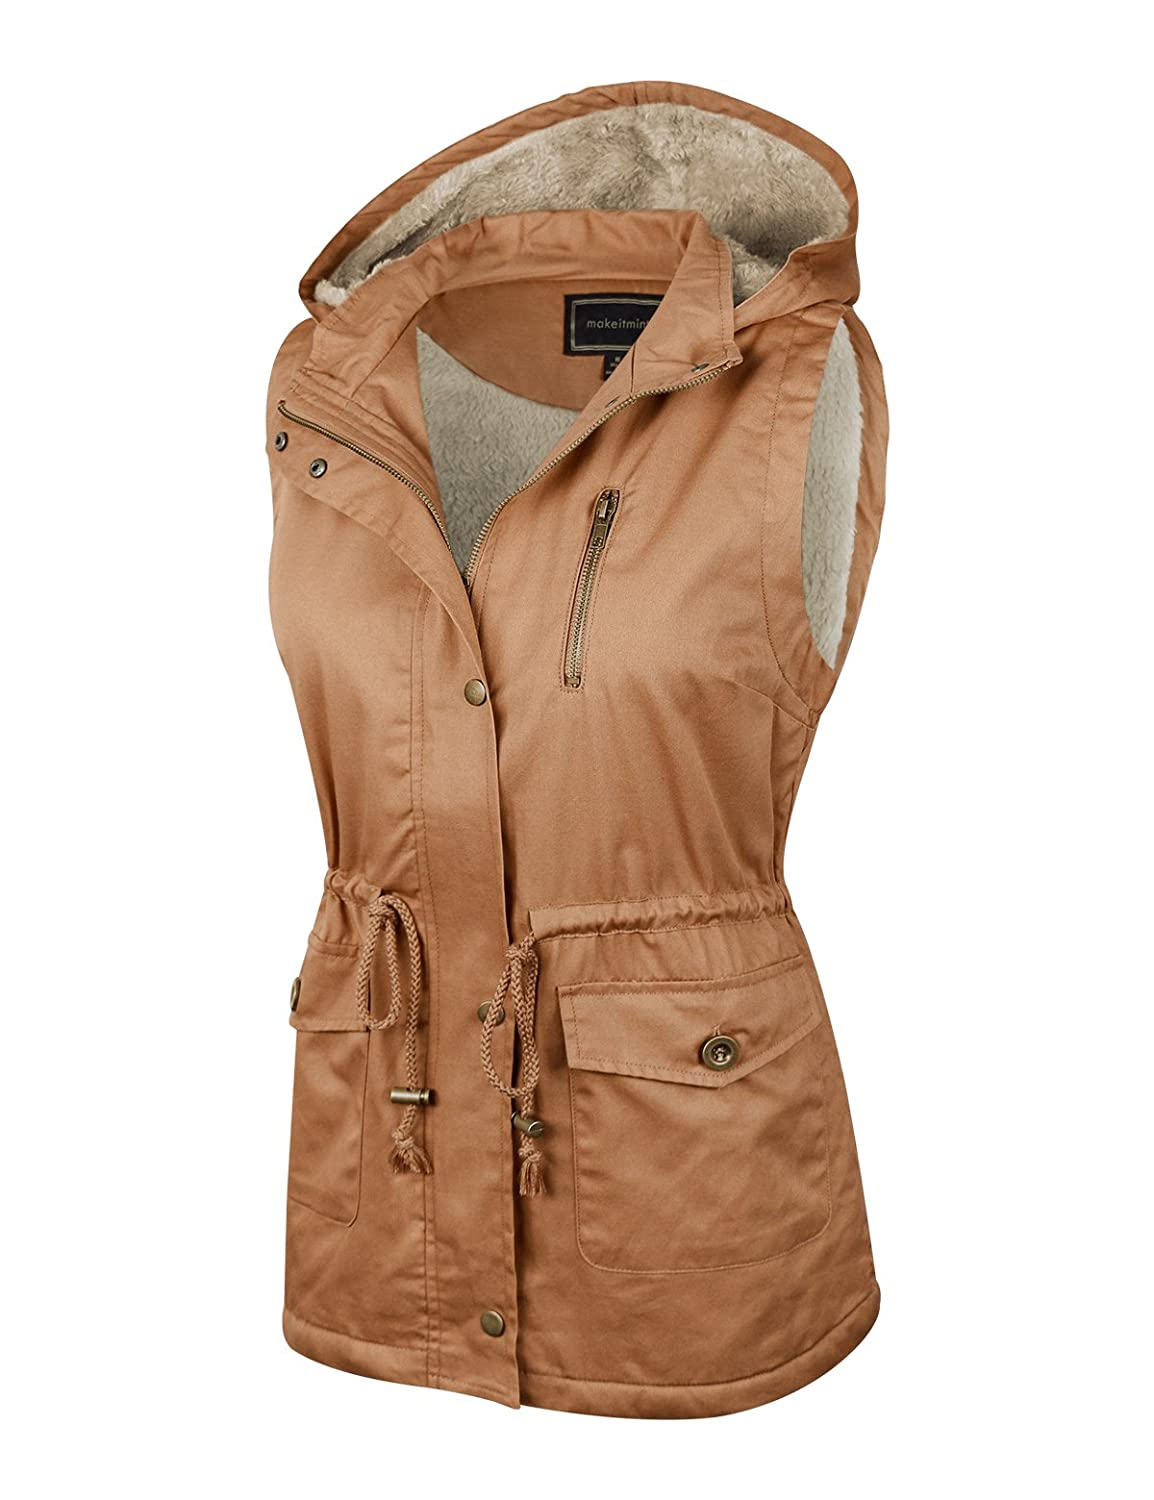 YJV0018-34CAMEL-1XL S-3XL makeitmint Womens Soft Faux Fur Lined Anorak Utility Hooded Jacket Vest